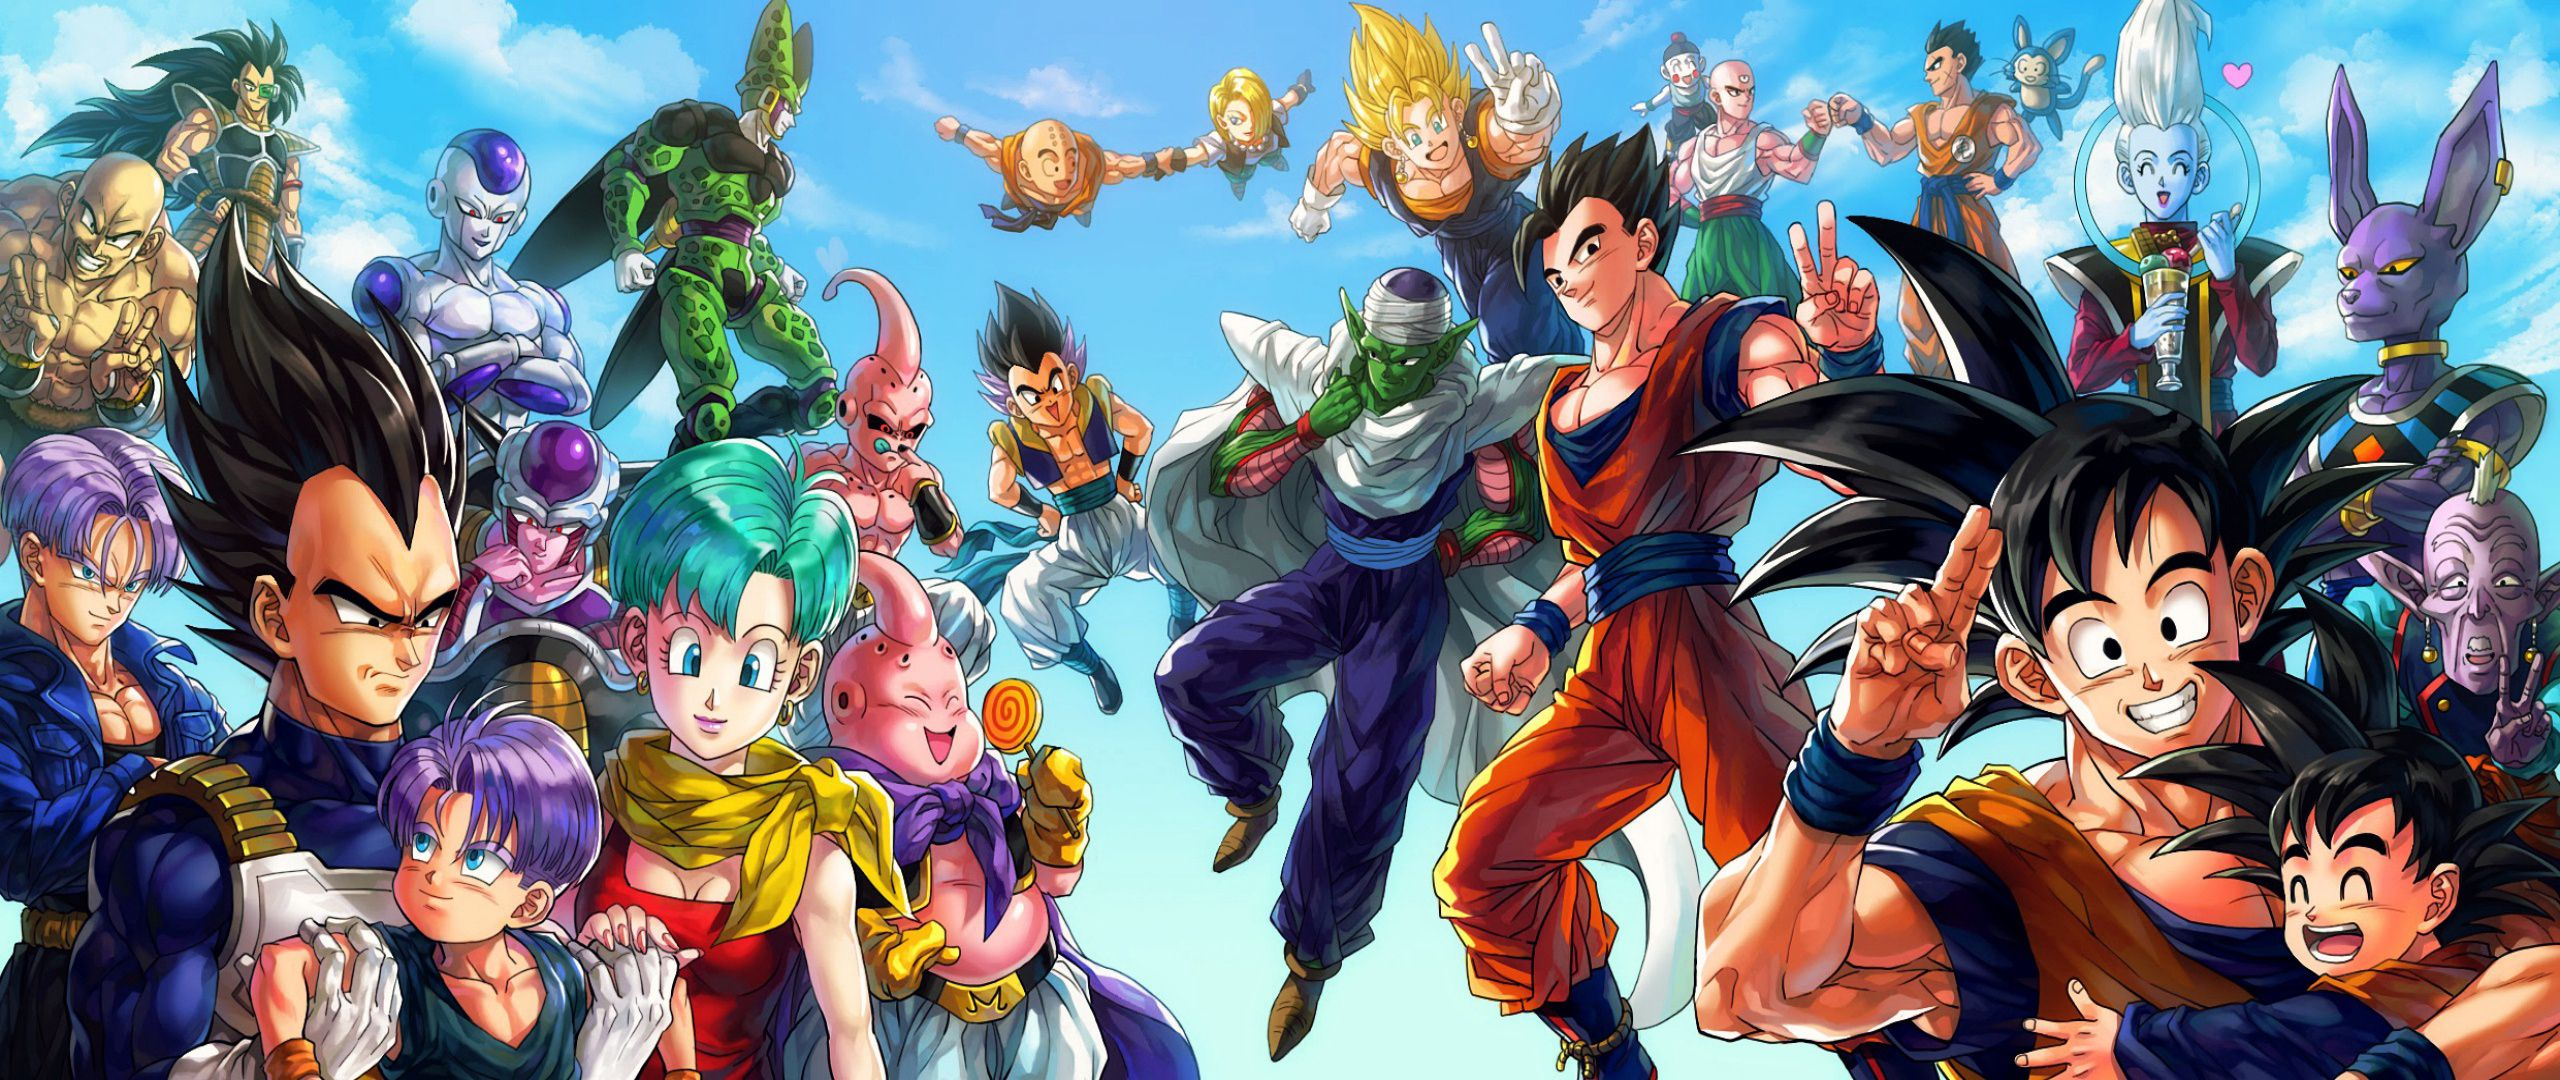 Dragon Ball Wallpapers Top Free Dragon Ball Backgrounds